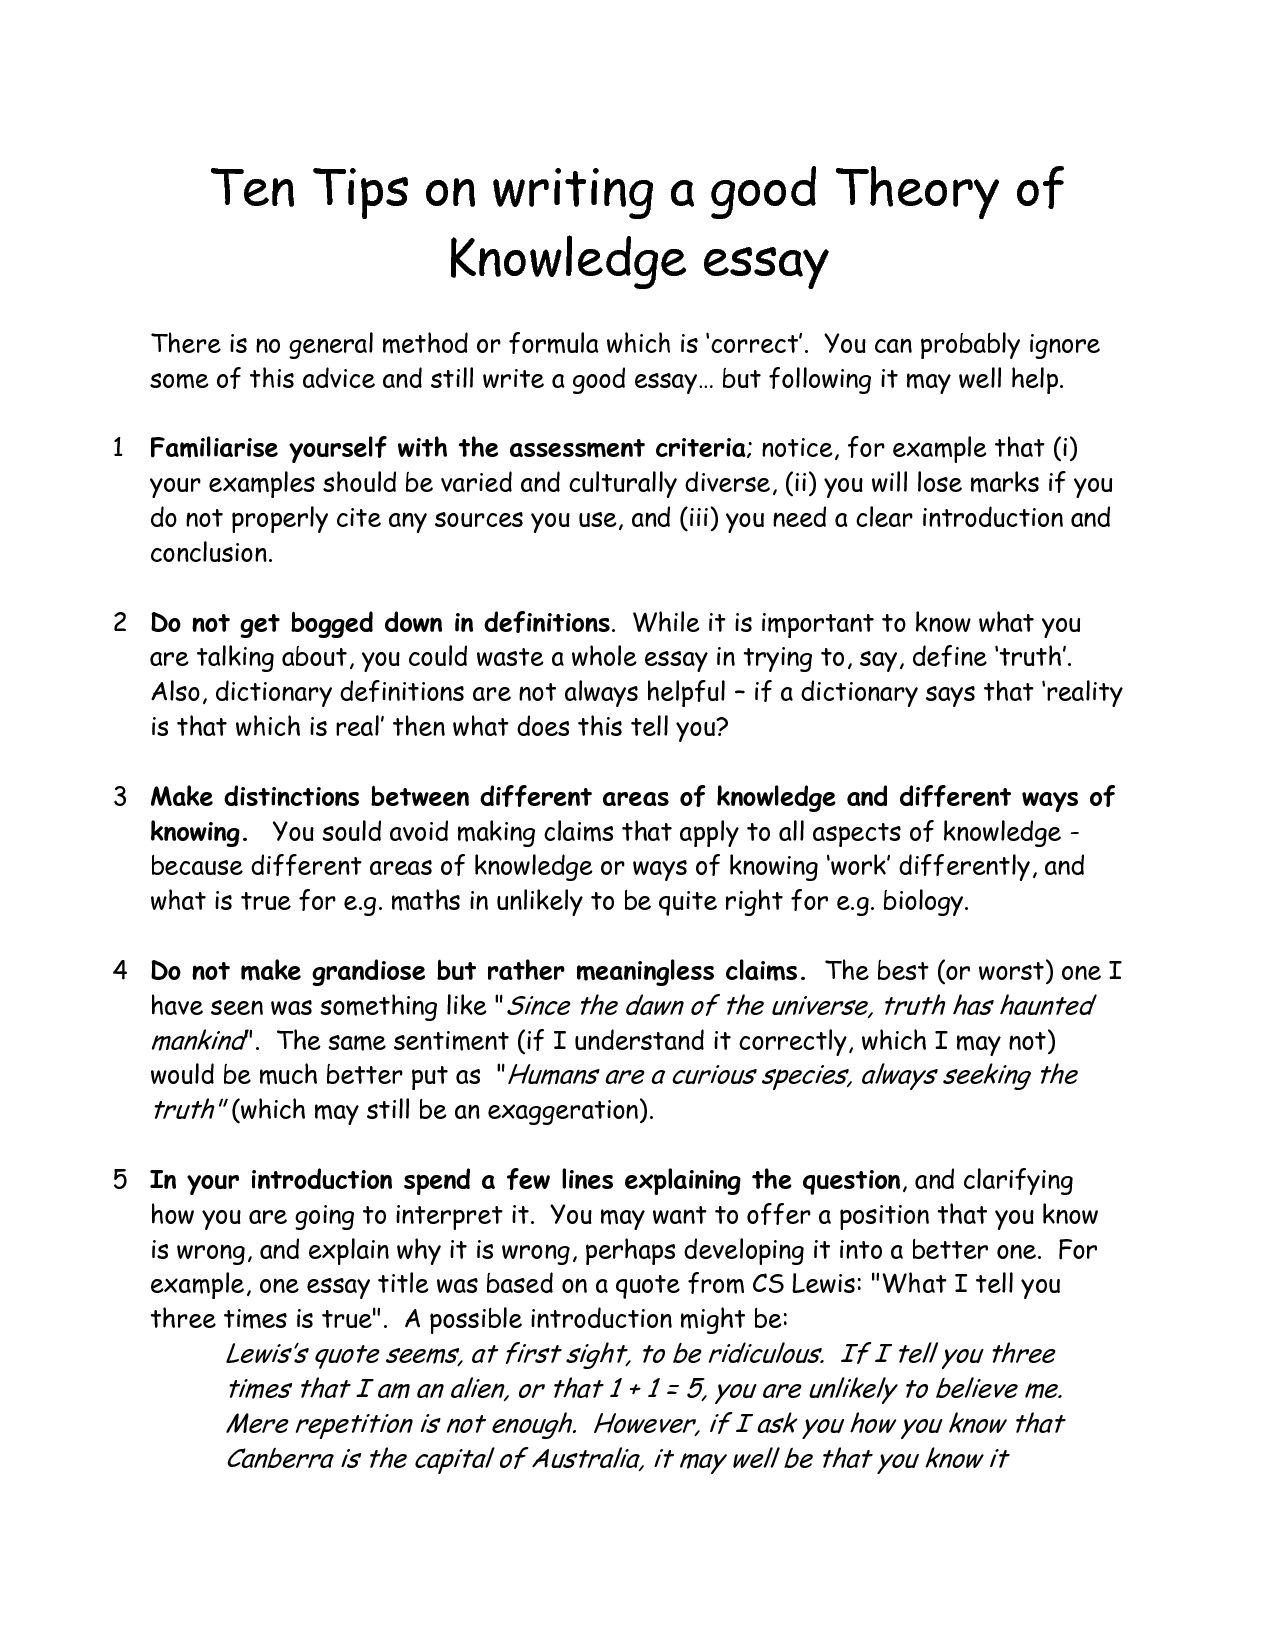 Essay Proposal Template Essay About Myself As A Writer Cause And Effect Essay Topics For High School also Proposal Essay Topic Essay About Myself As A Writer  An Essay About Myself Writing  Sample Of Research Essay Paper